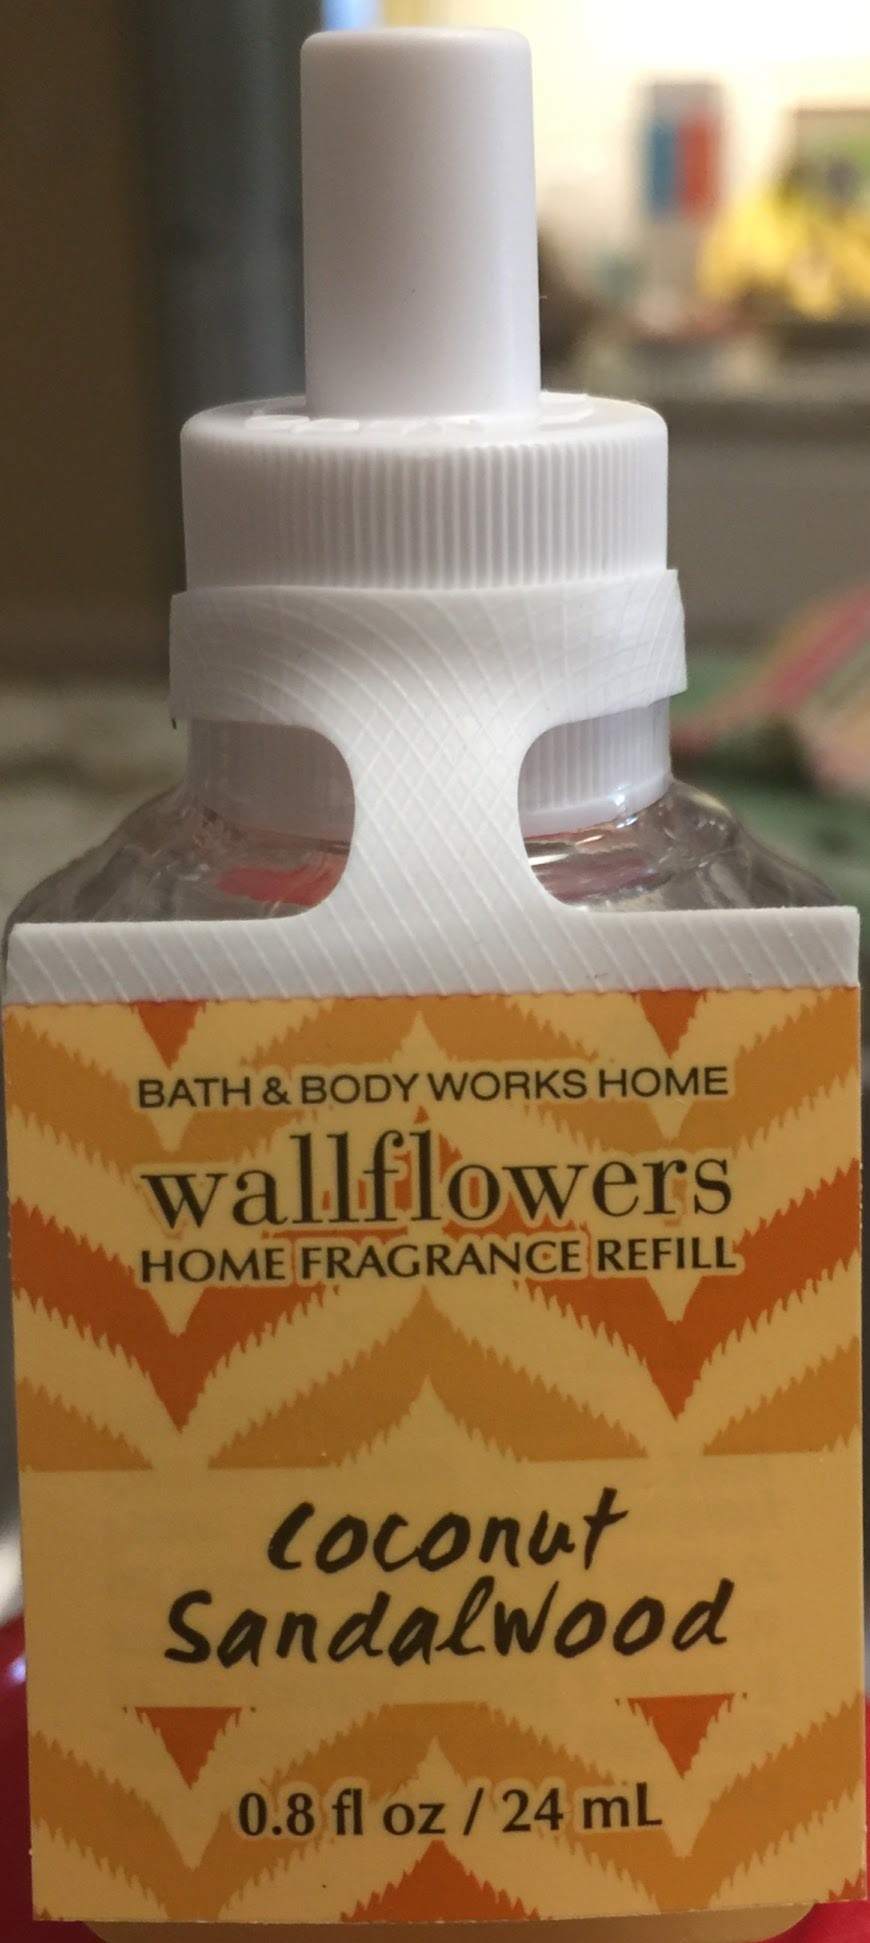 Top 286 Reviews and Complaints about Bath & Body Works